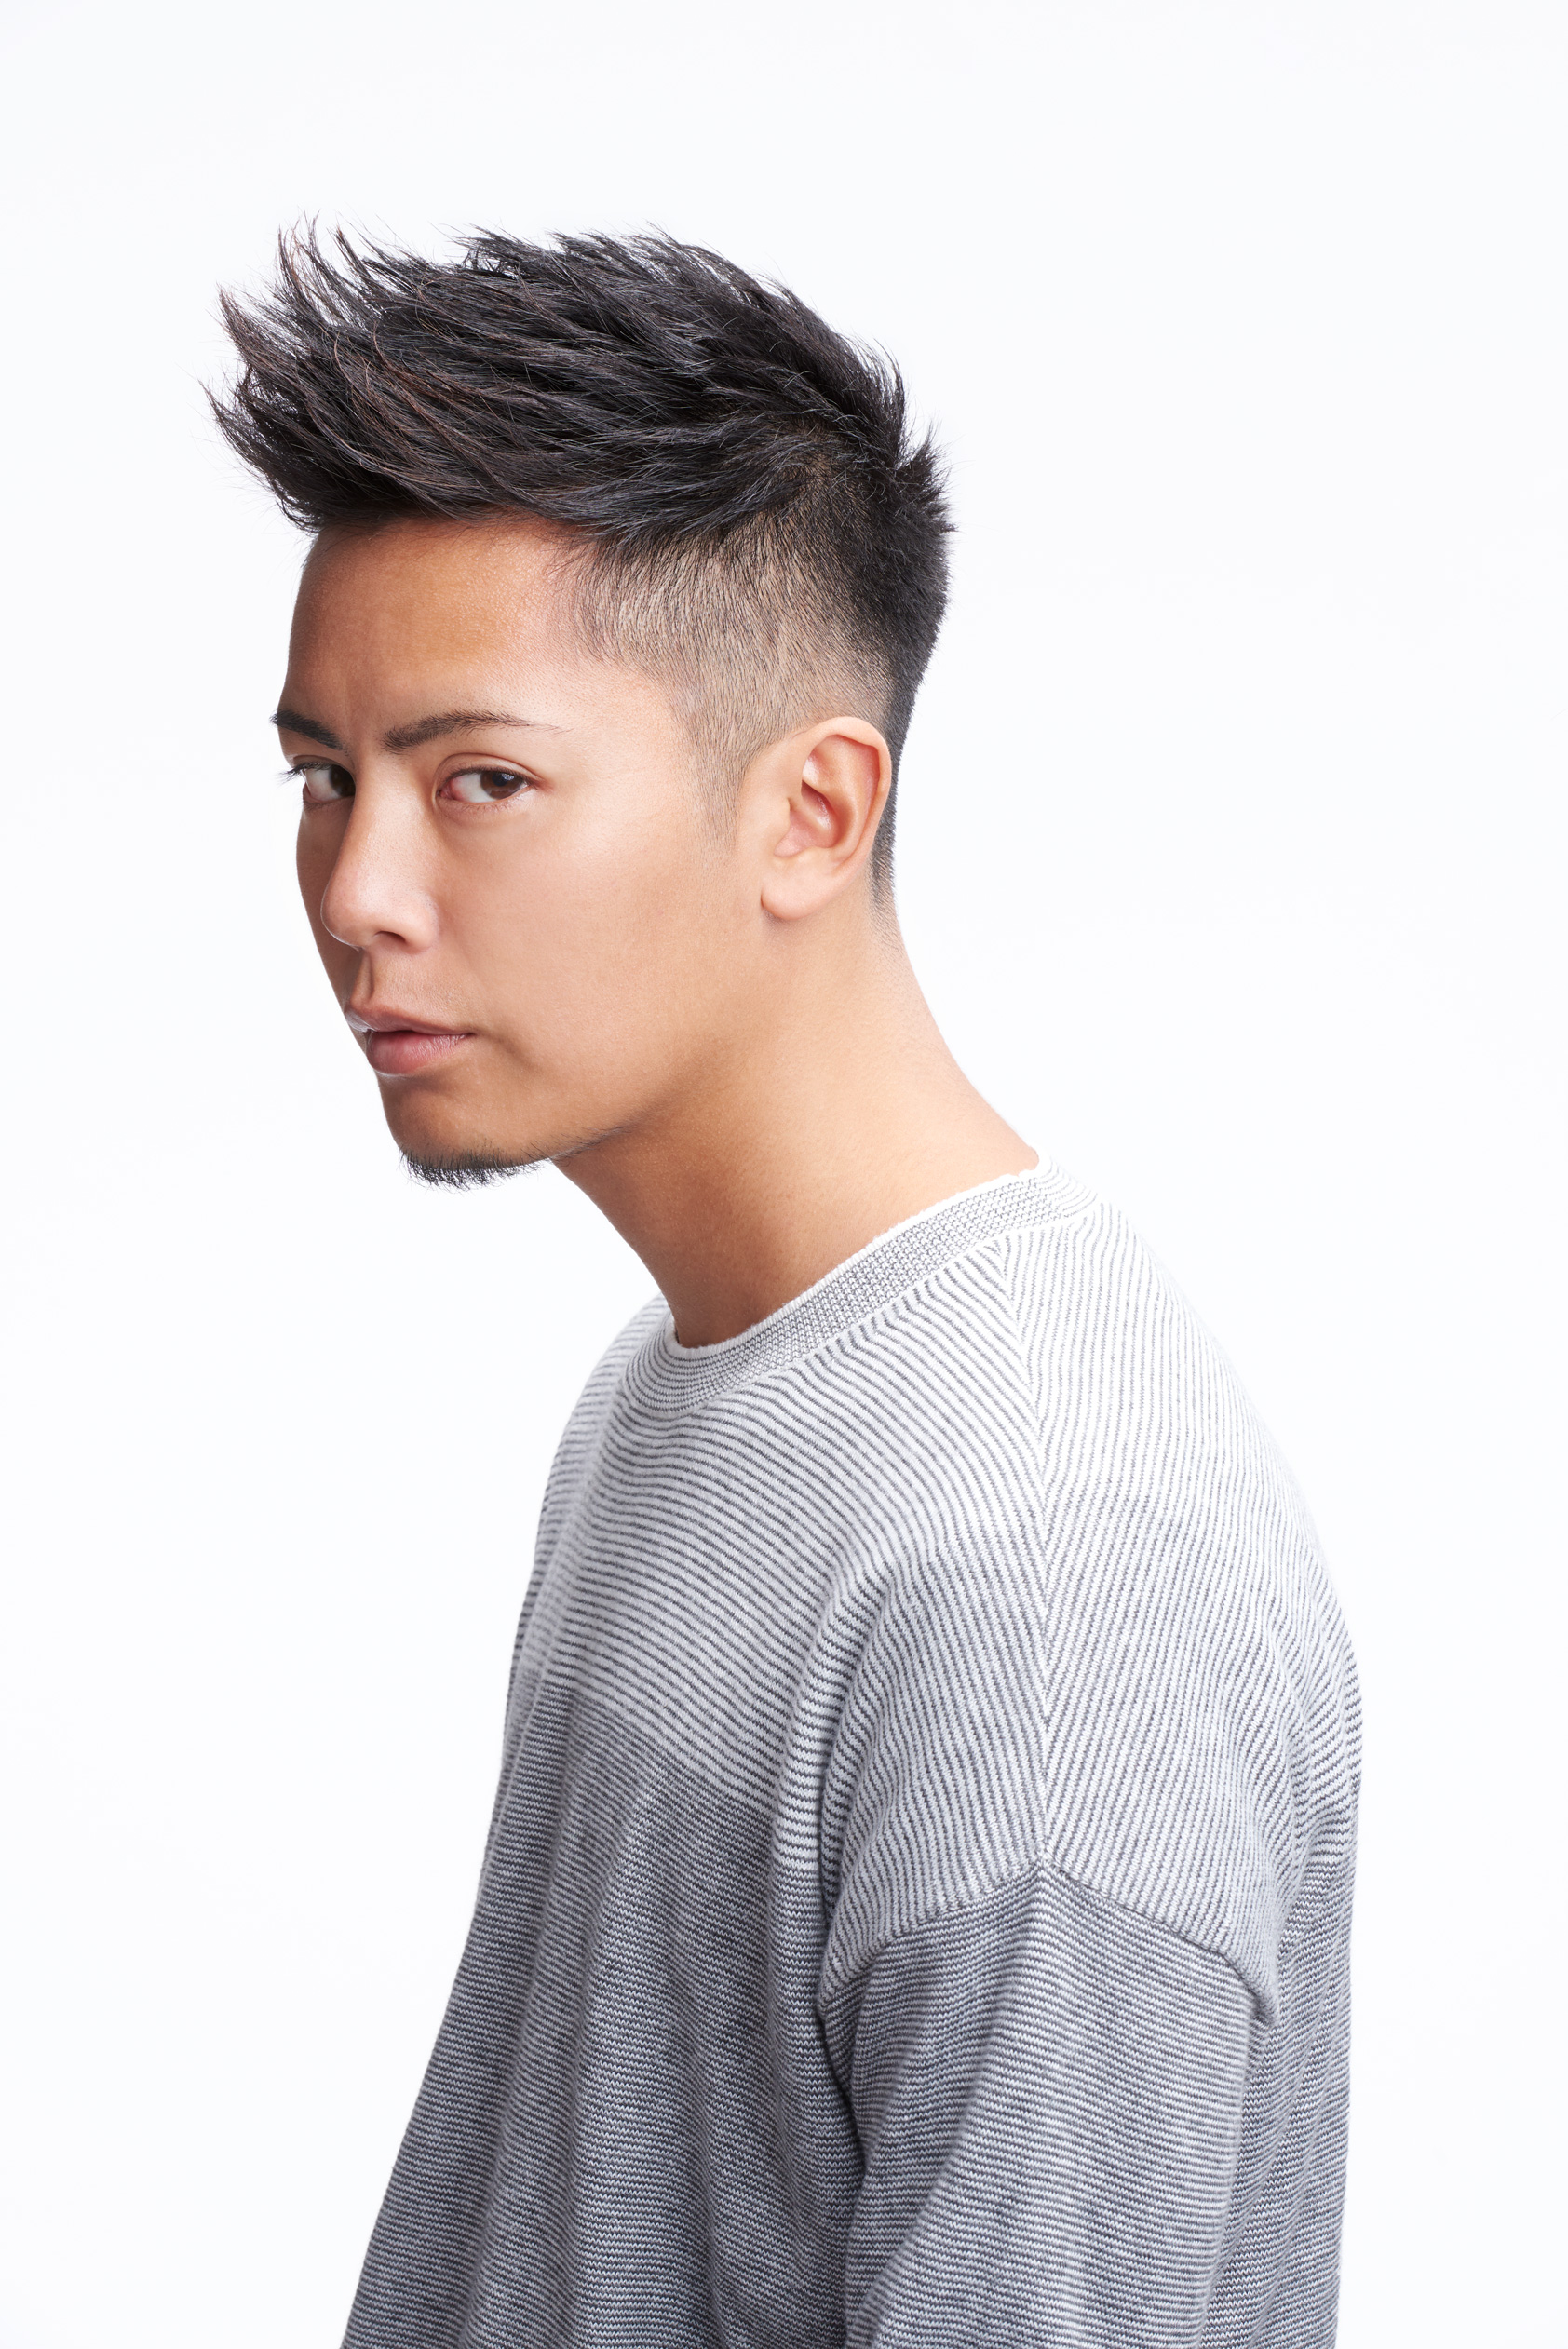 Korean Fauxhawk